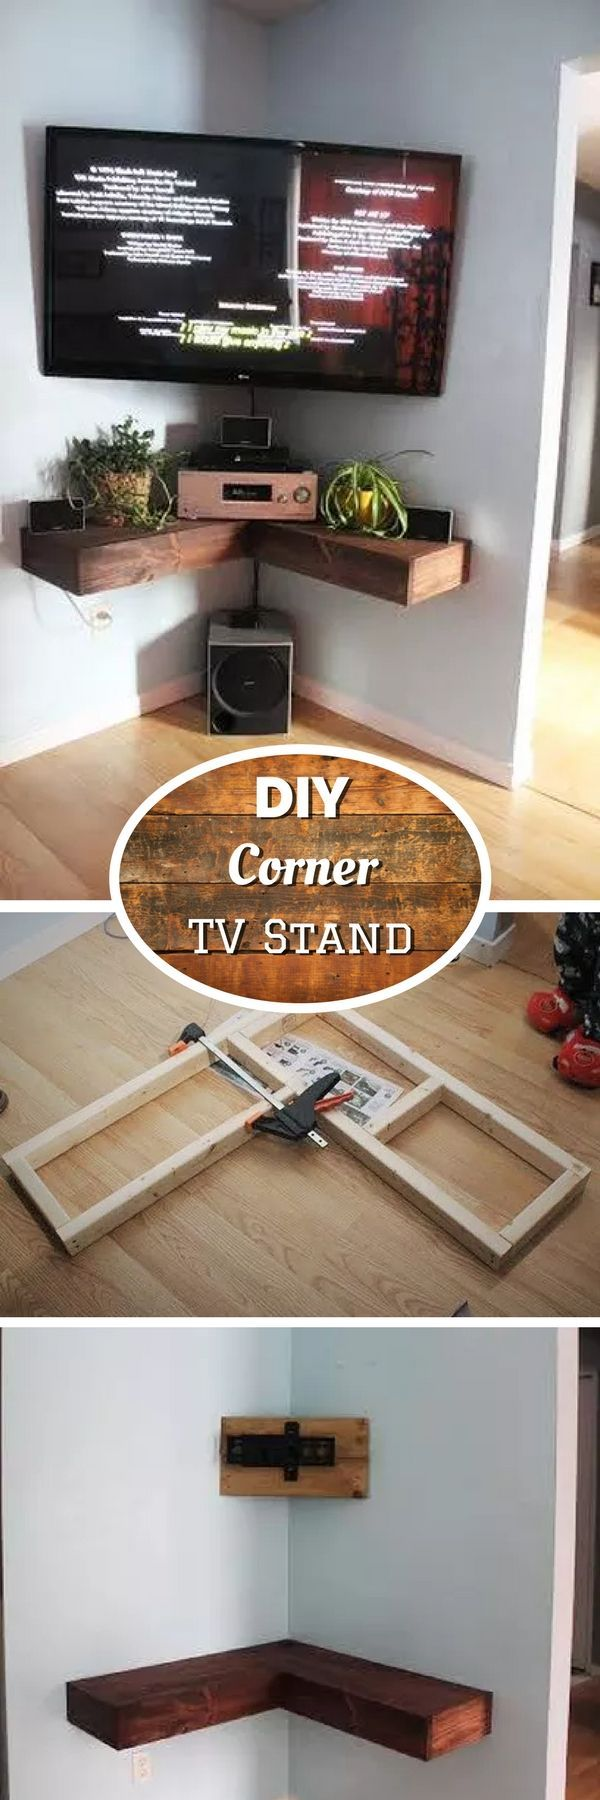 Check out how to build a DIY corner TV stand /istandarddesign/